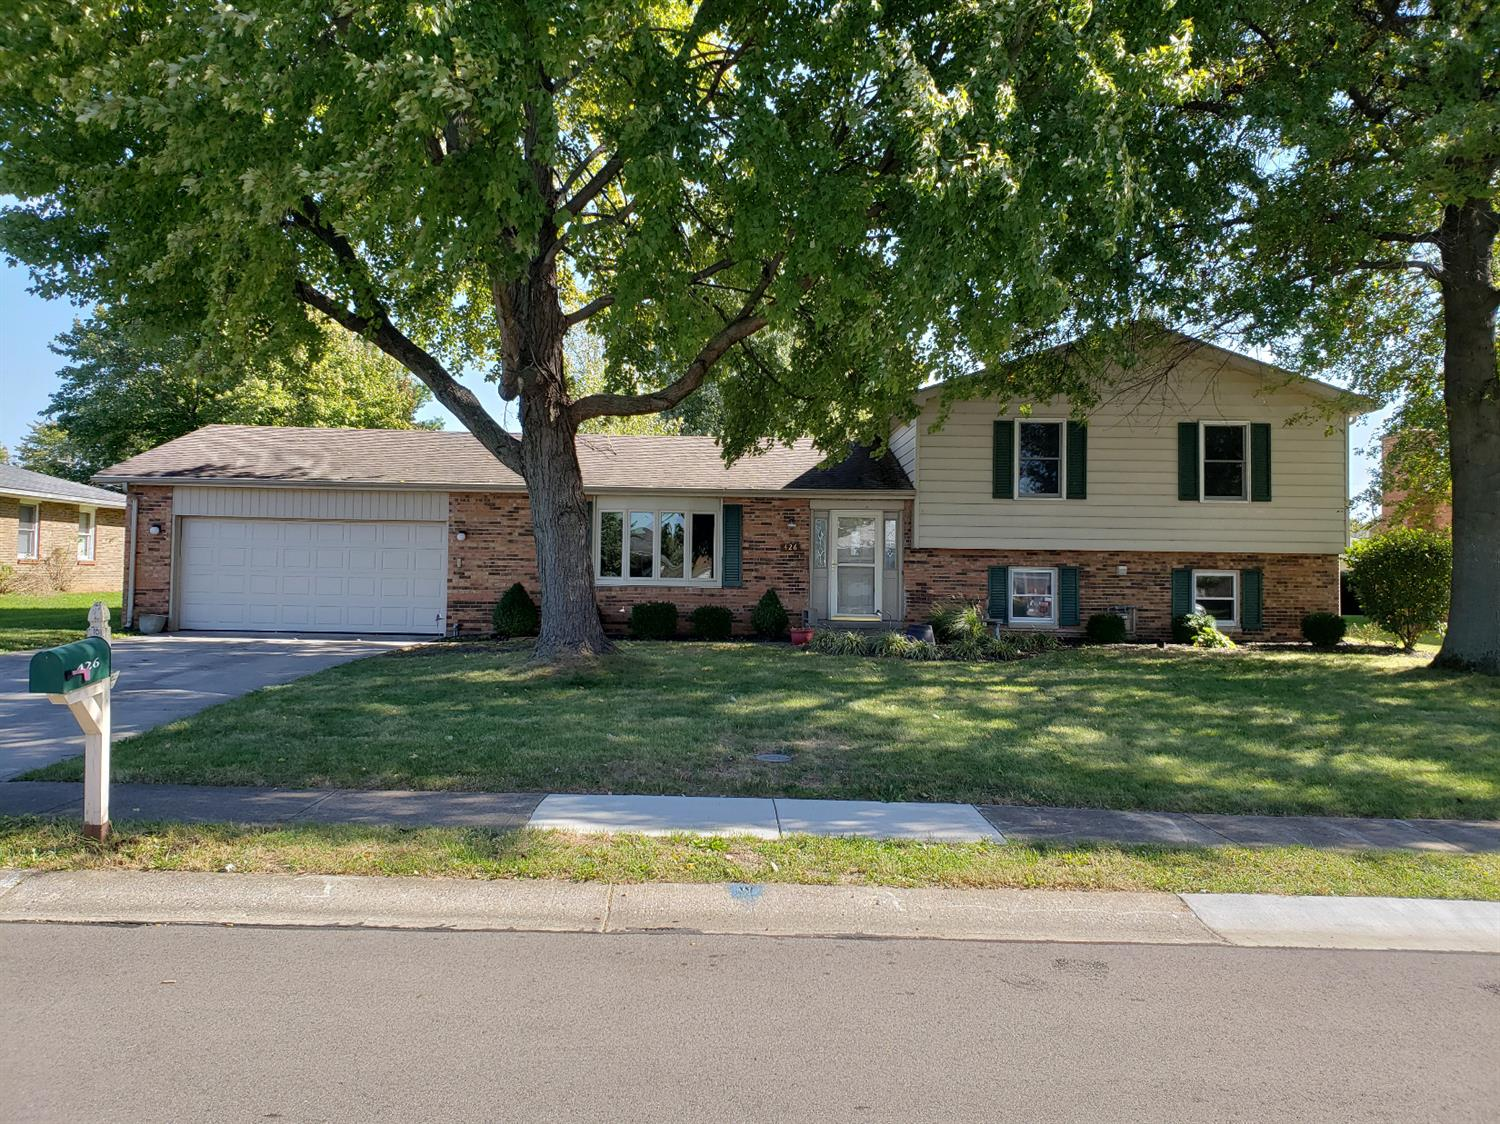 Property for sale at 426 Westview Avenue, Trenton,  OH 45067